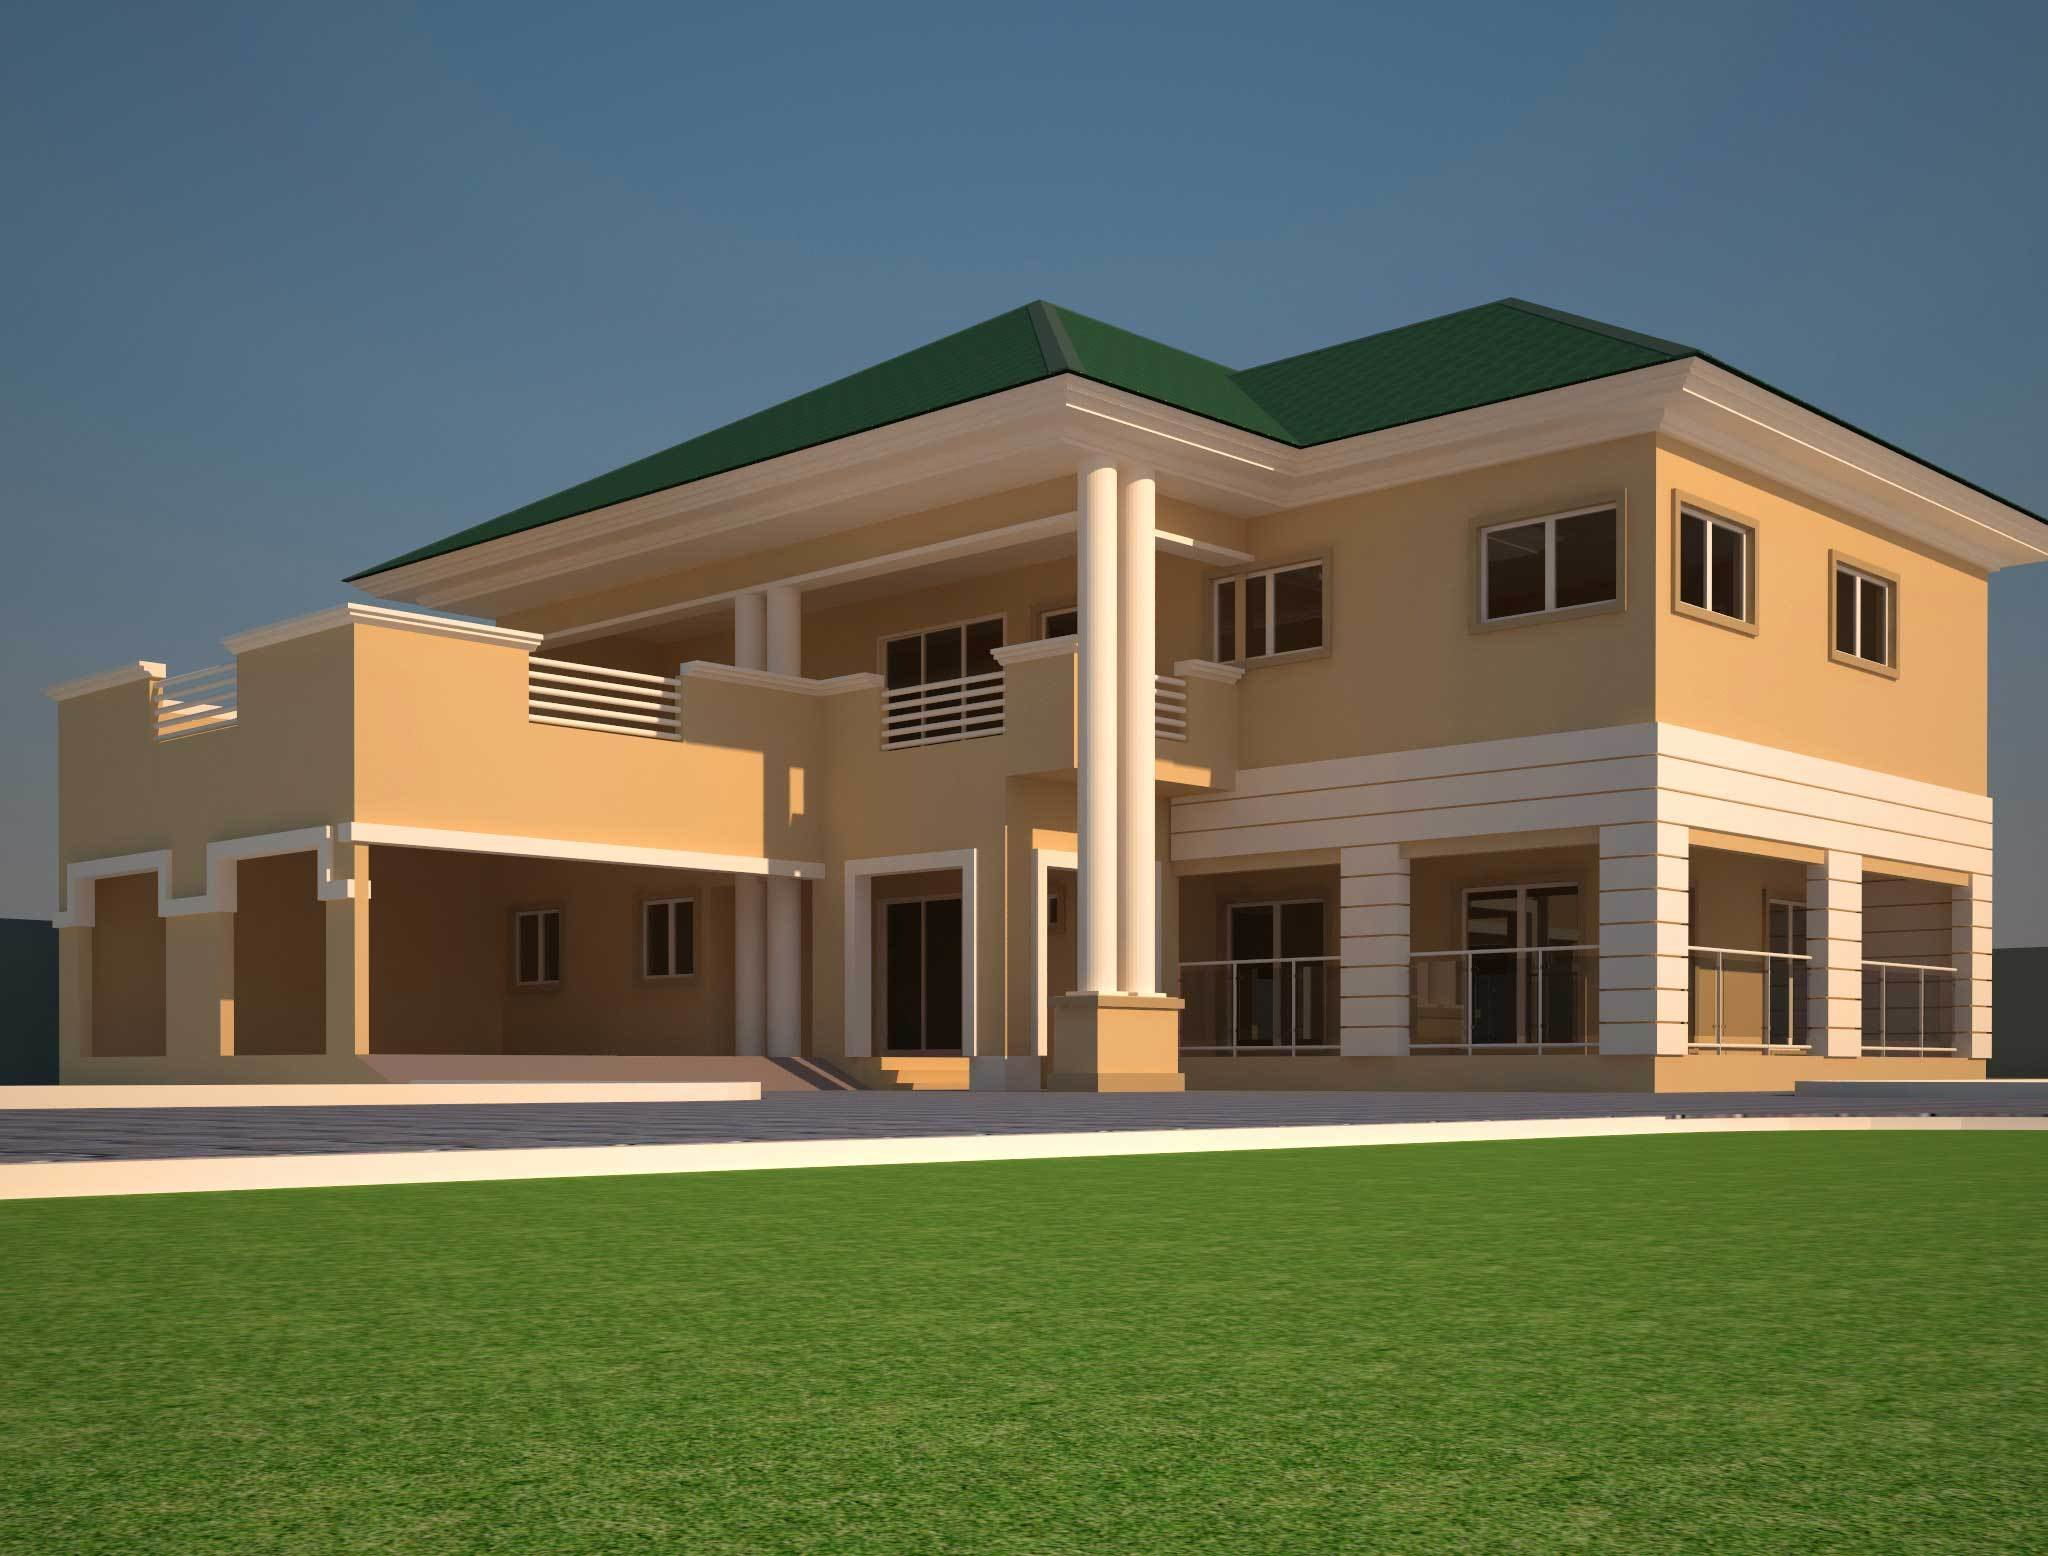 Best House Plans Ghana 3 4 5 6 Bedroom House Plans In Ghana With Pictures